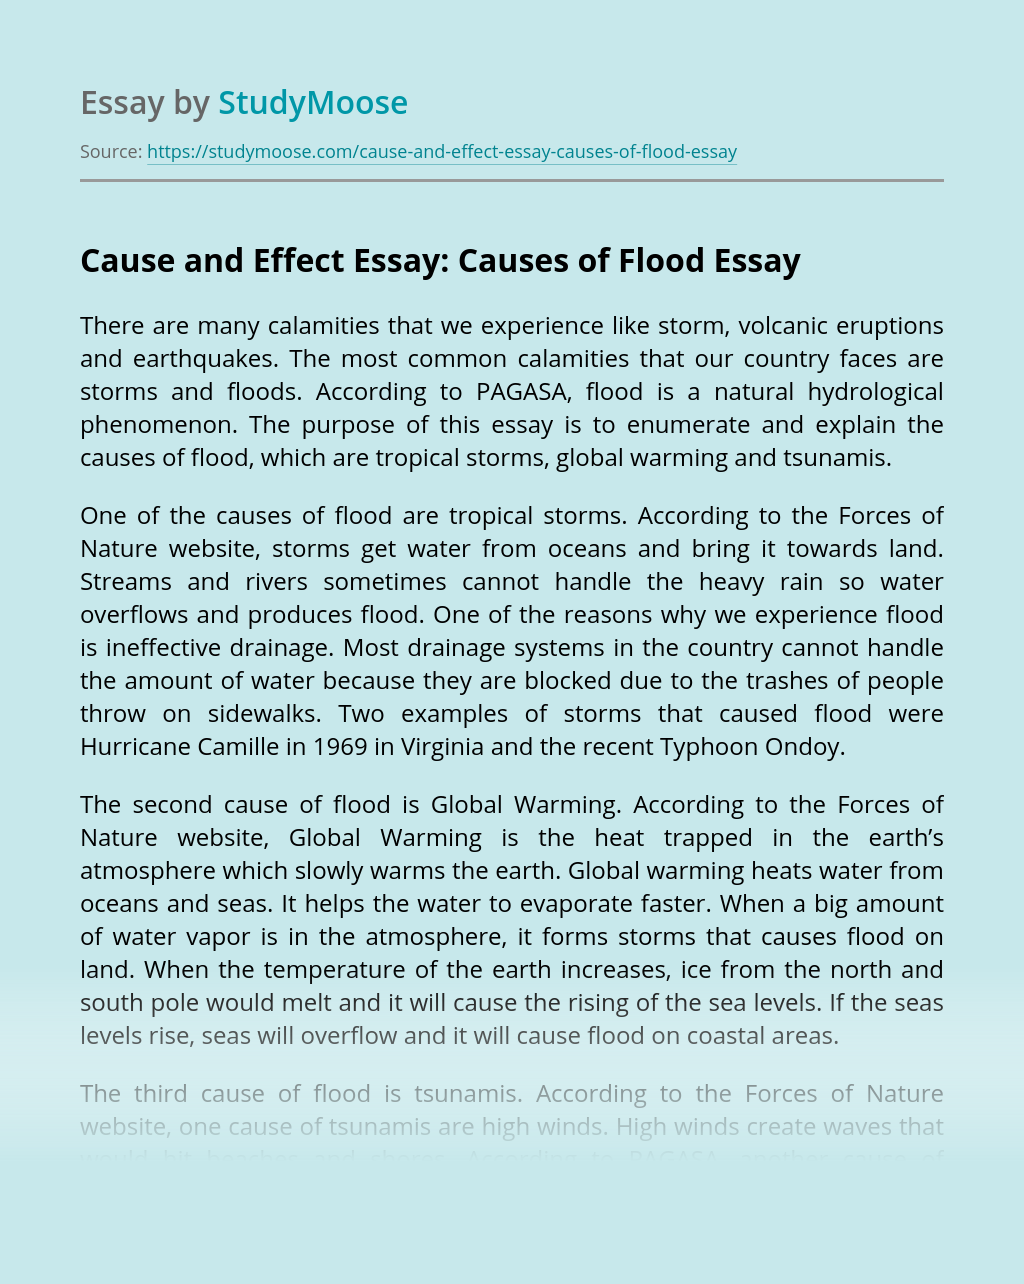 Cause and Effect Essay: Causes of Flood